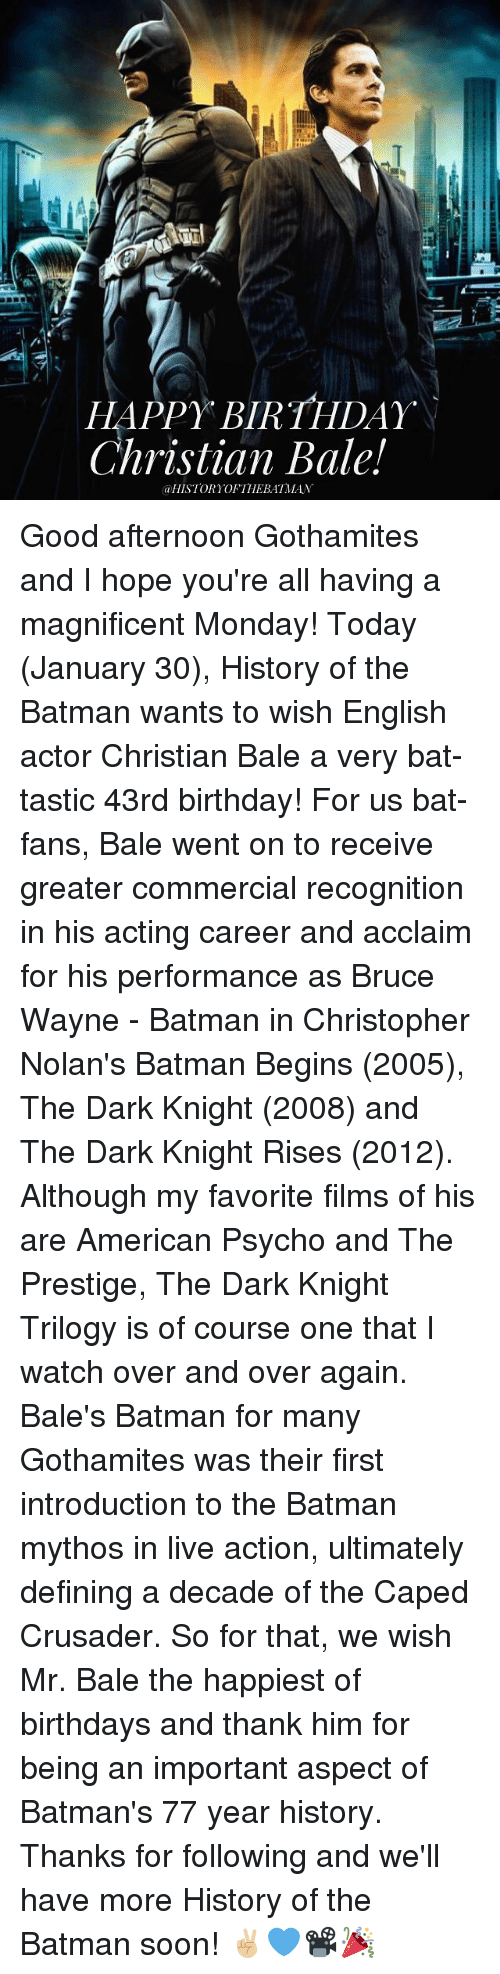 christopher nolan: HAPPY BIRTHDAY  Christian Bale!  @HISTORY OF THE BATMAN Good afternoon Gothamites and I hope you're all having a magnificent Monday! Today (January 30), History of the Batman wants to wish English actor Christian Bale a very bat-tastic 43rd birthday! For us bat-fans, Bale went on to receive greater commercial recognition in his acting career and acclaim for his performance as Bruce Wayne - Batman in Christopher Nolan's Batman Begins (2005), The Dark Knight (2008) and The Dark Knight Rises (2012). Although my favorite films of his are American Psycho and The Prestige, The Dark Knight Trilogy is of course one that I watch over and over again. Bale's Batman for many Gothamites was their first introduction to the Batman mythos in live action, ultimately defining a decade of the Caped Crusader. So for that, we wish Mr. Bale the happiest of birthdays and thank him for being an important aspect of Batman's 77 year history. Thanks for following and we'll have more History of the Batman soon! ✌🏼️💙📽🎉